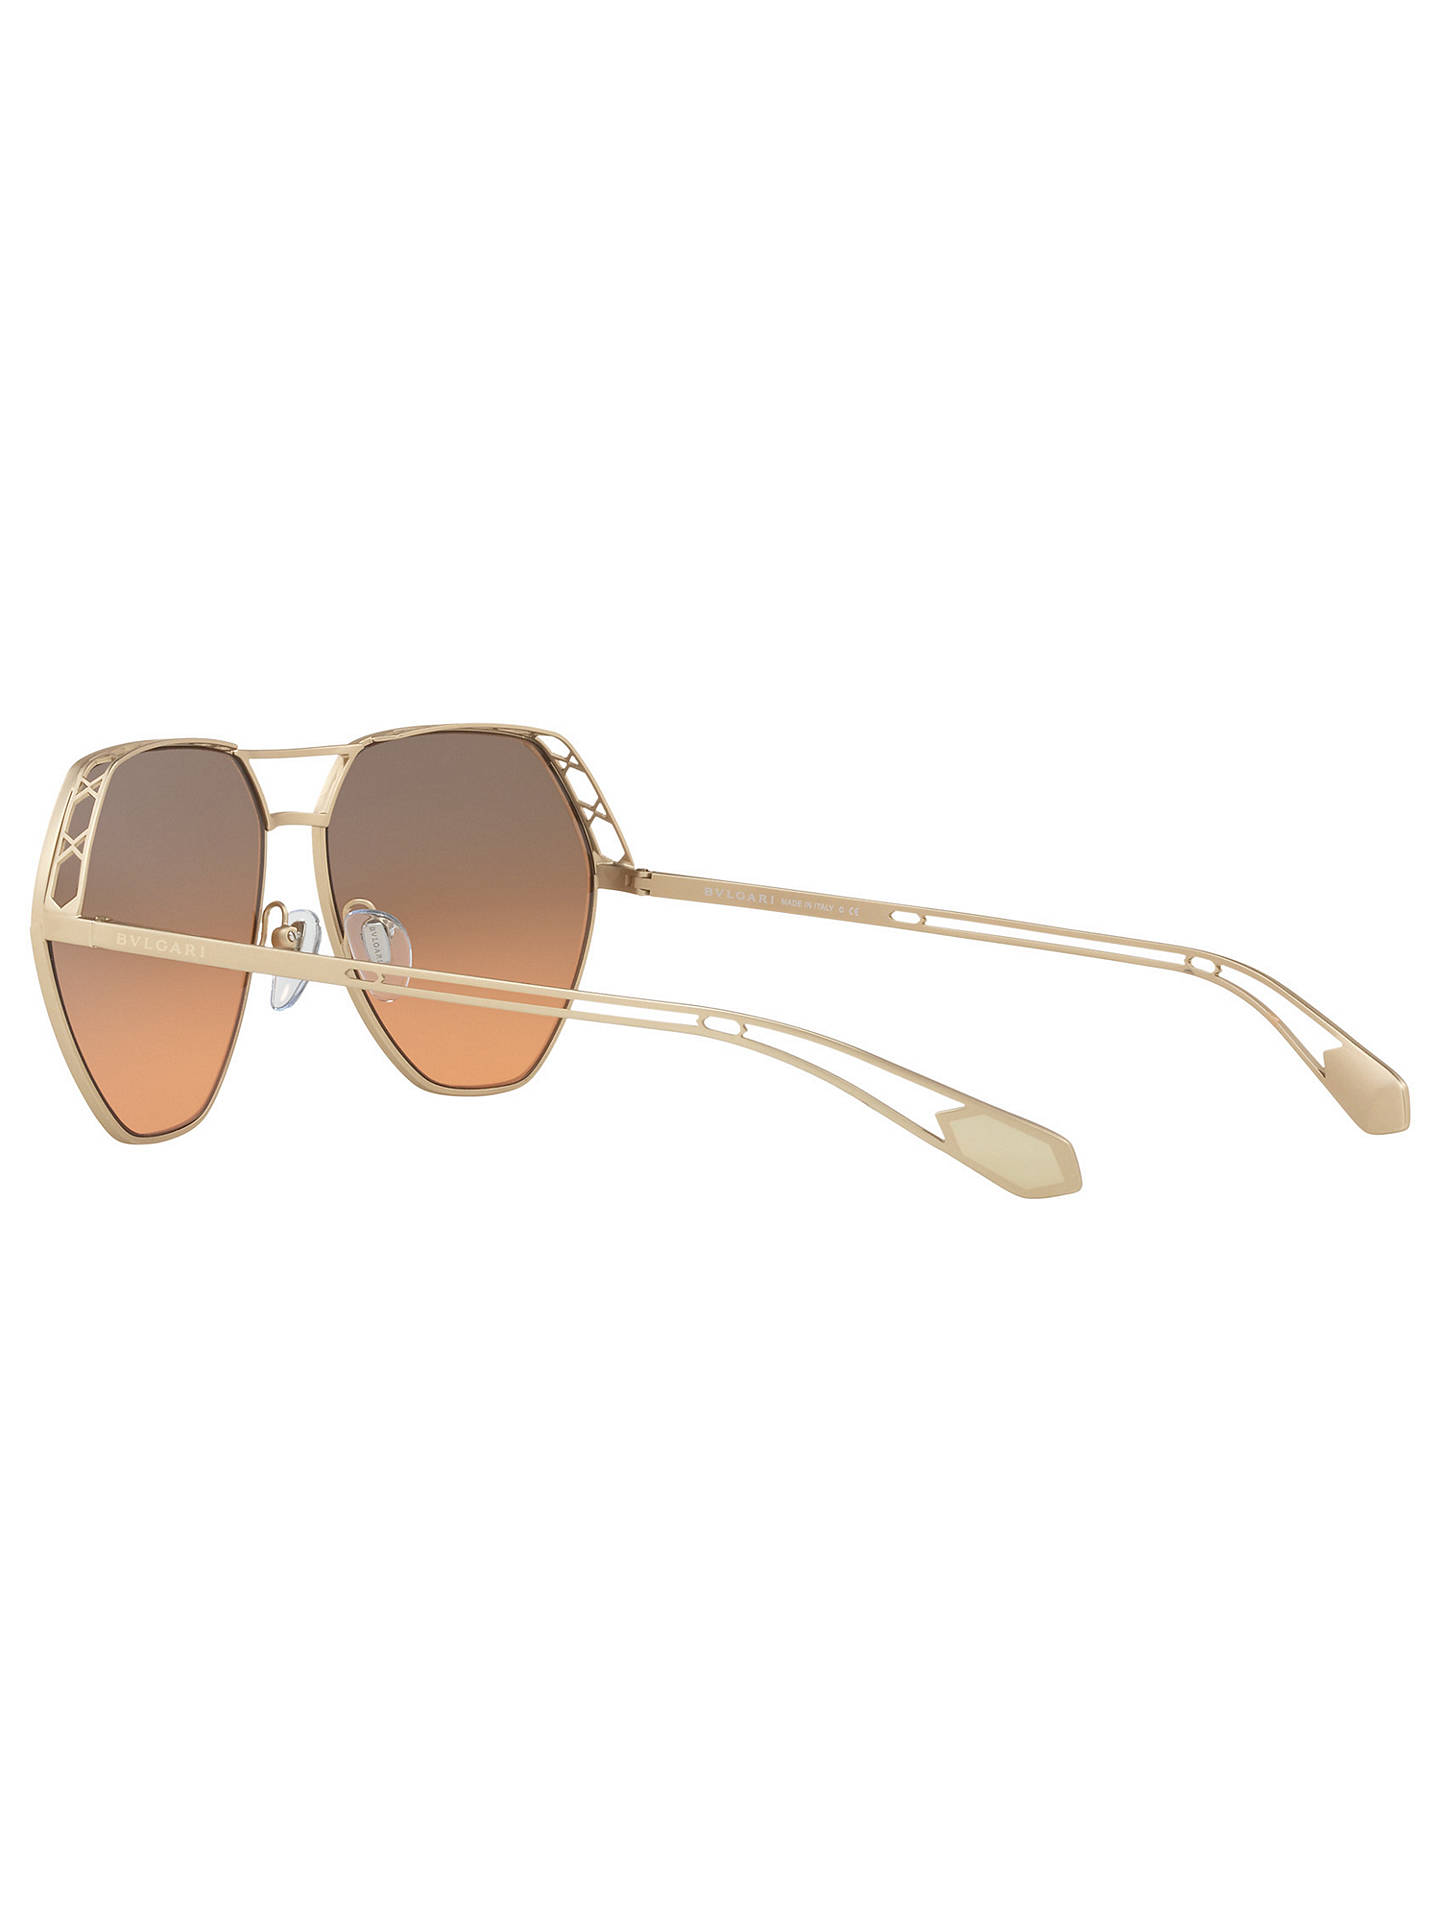 Buy BVLGARI BV6098 Aviator Sunglasses, Gold/Grey Rose Online at johnlewis.com